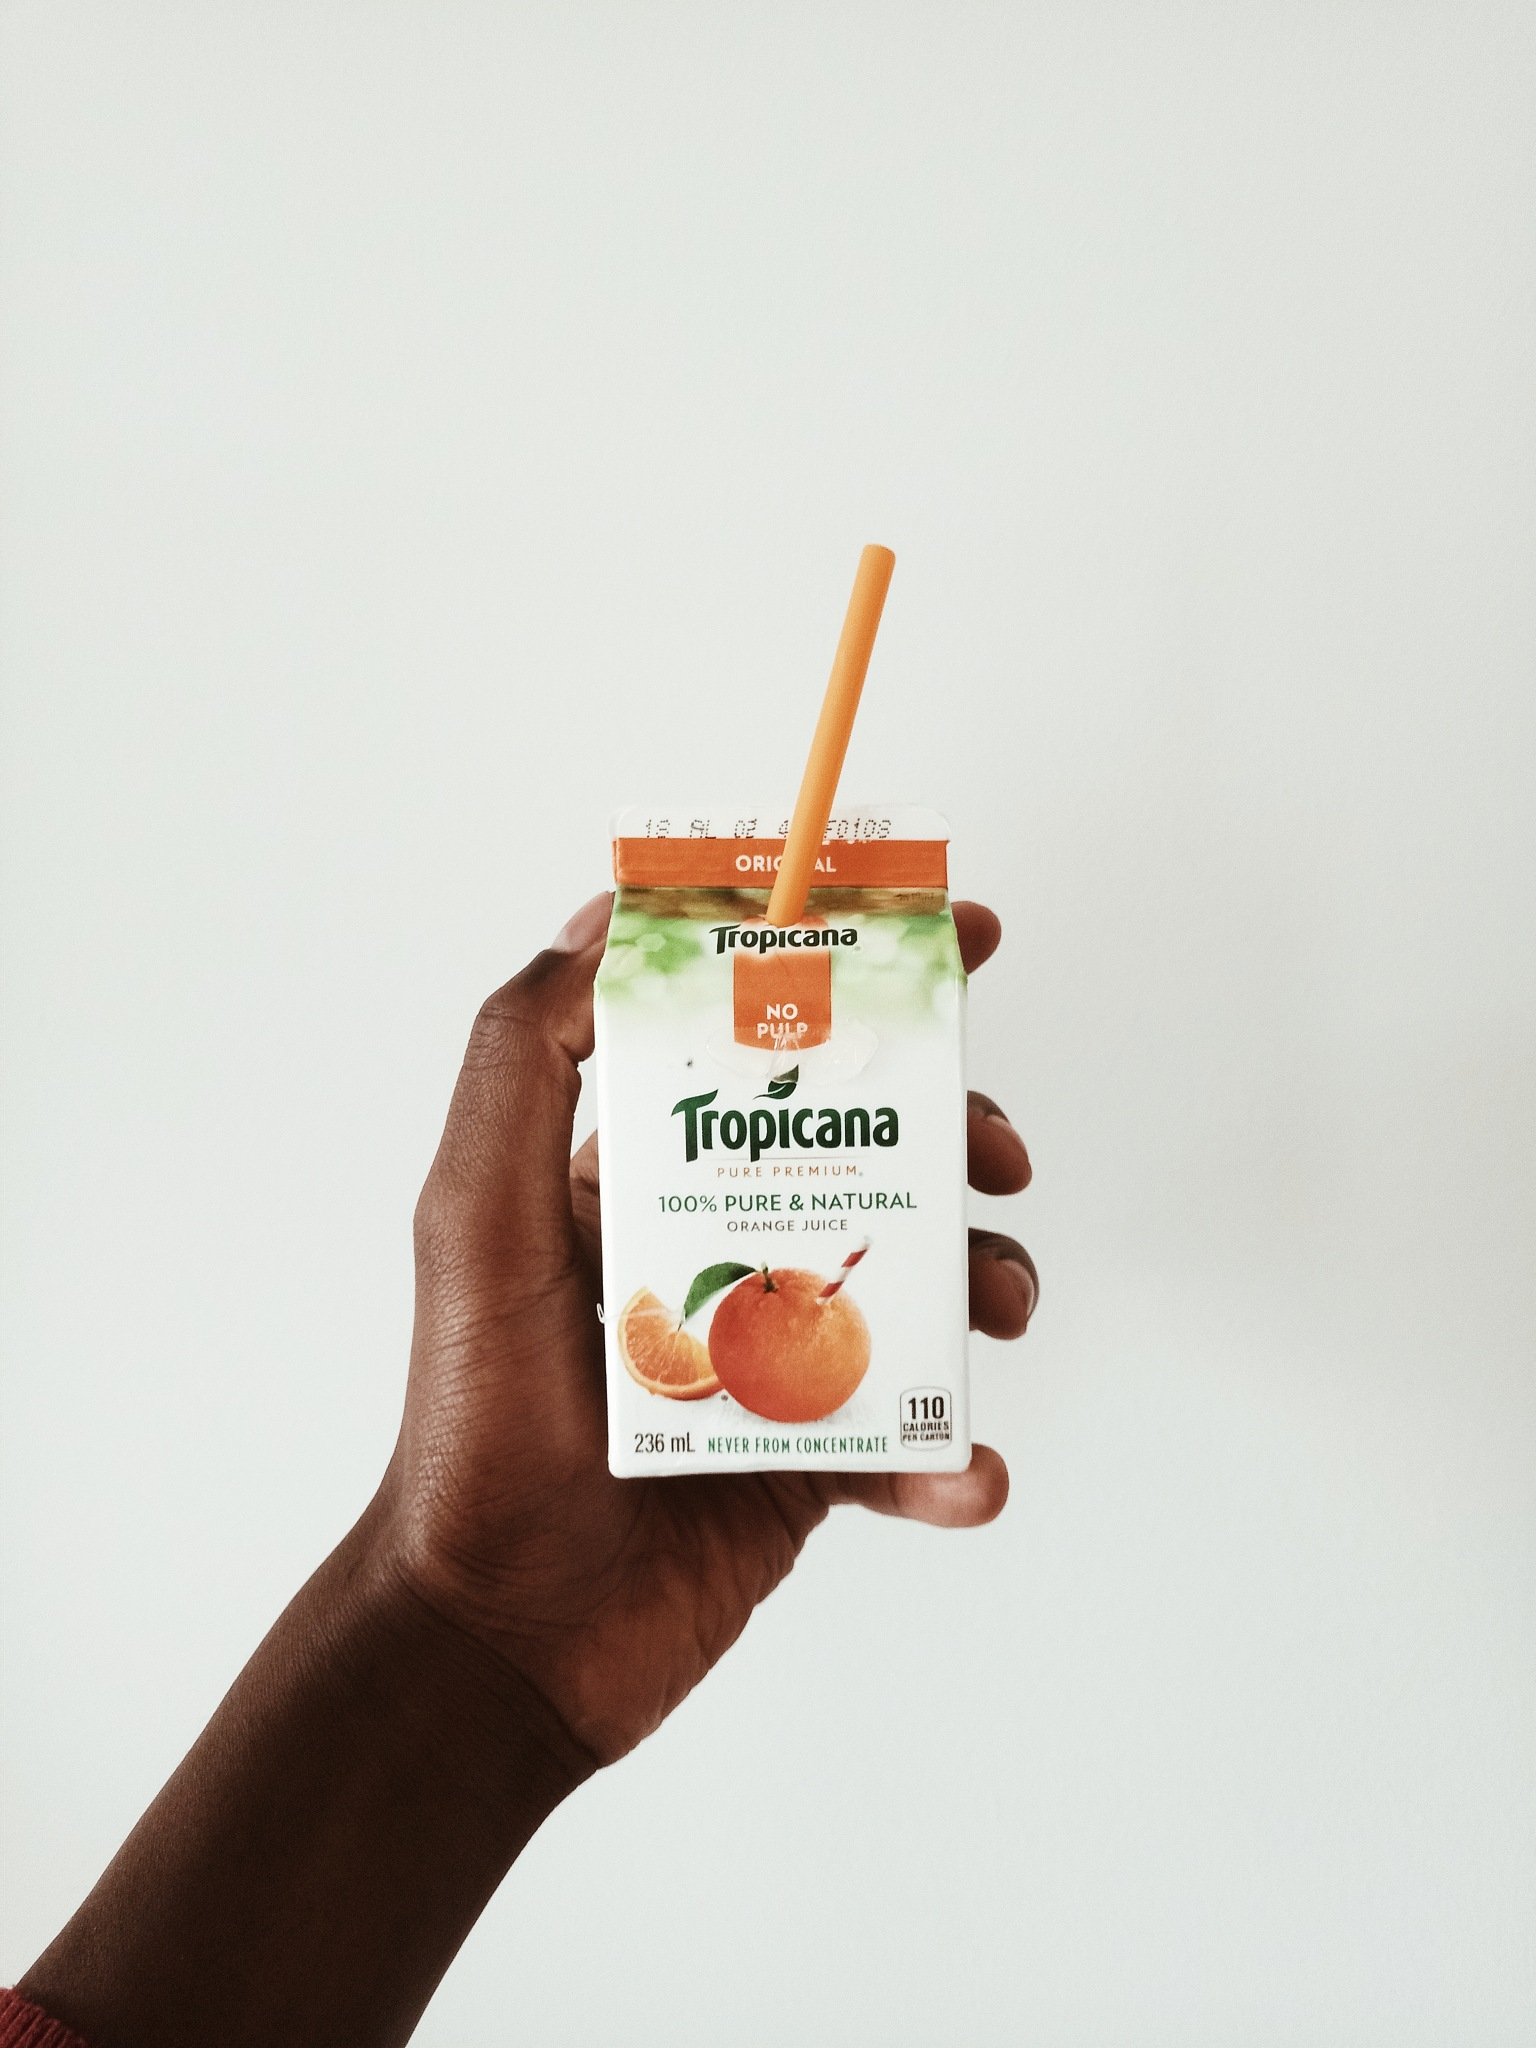 minimilast product shot of Tropicana juice box by FRED ANYONA